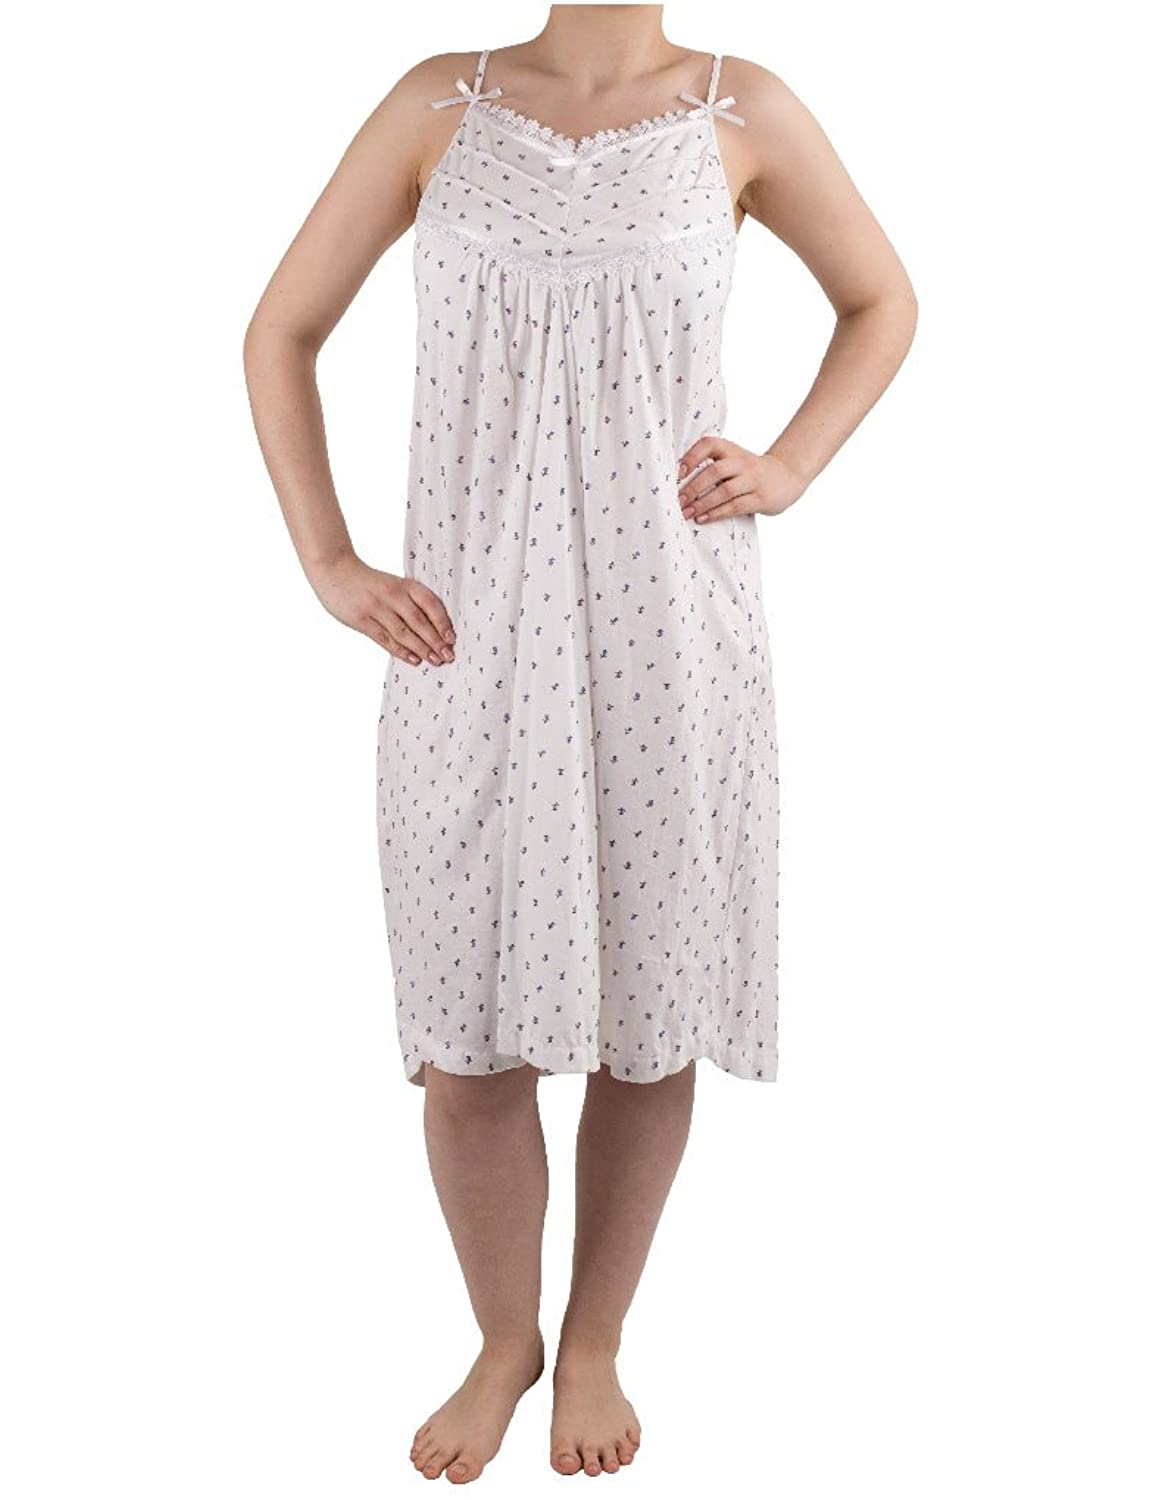 NSW Lounge Melissa White and Lilac Combed Cotton Spaghetti Strap Nightdress 3111